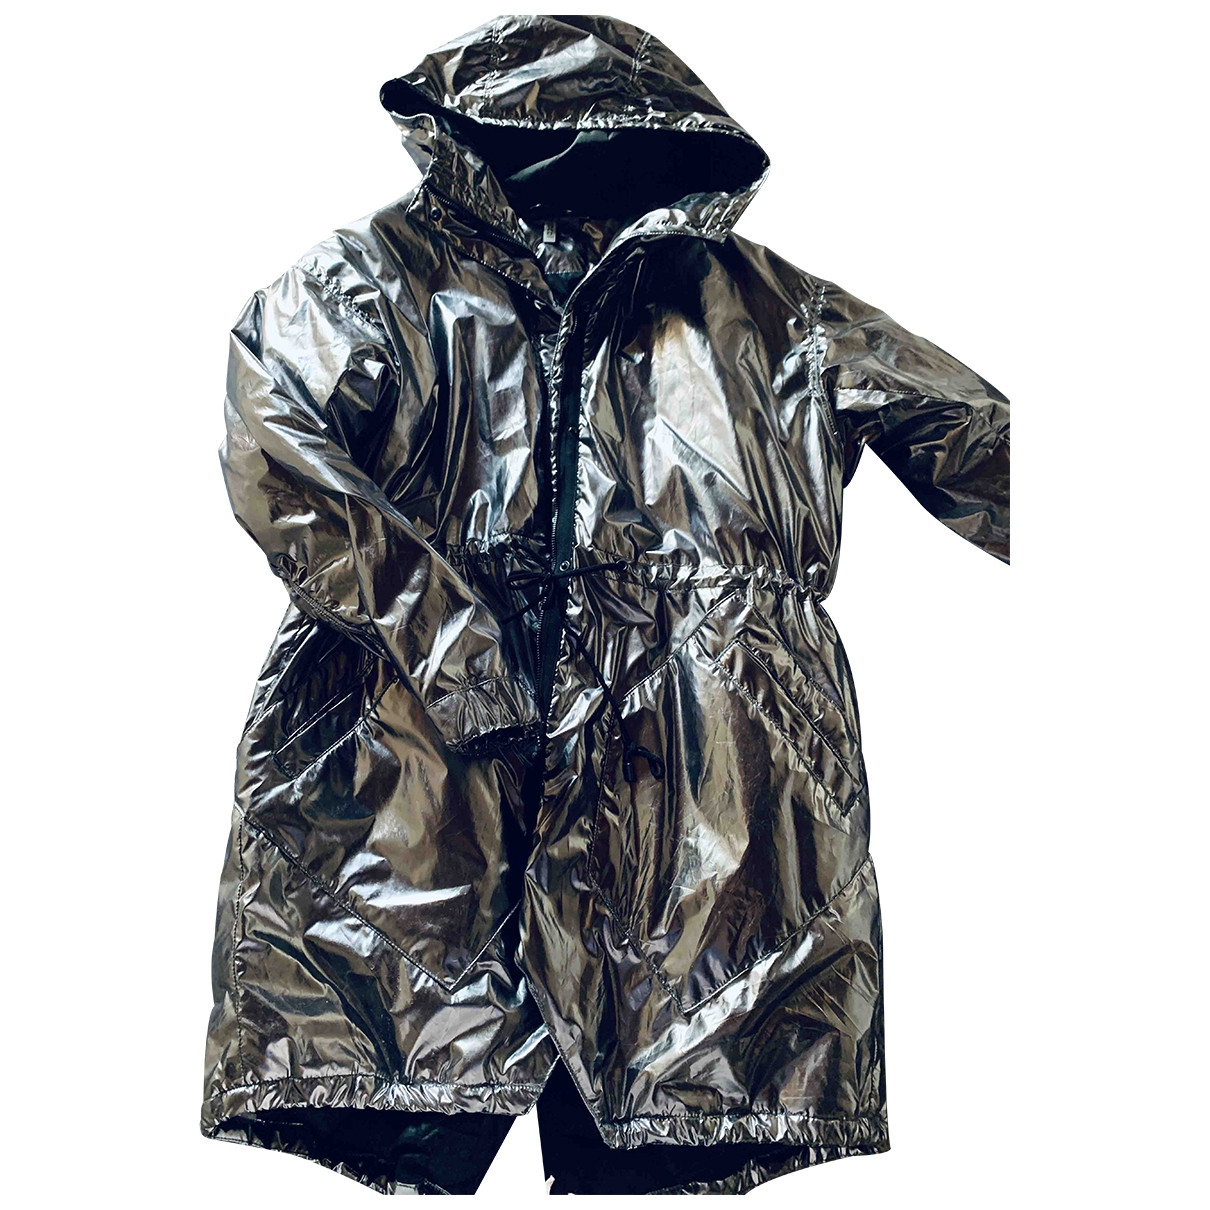 Hm Conscious Exclusive \N Silver jacket for Women 44 IT